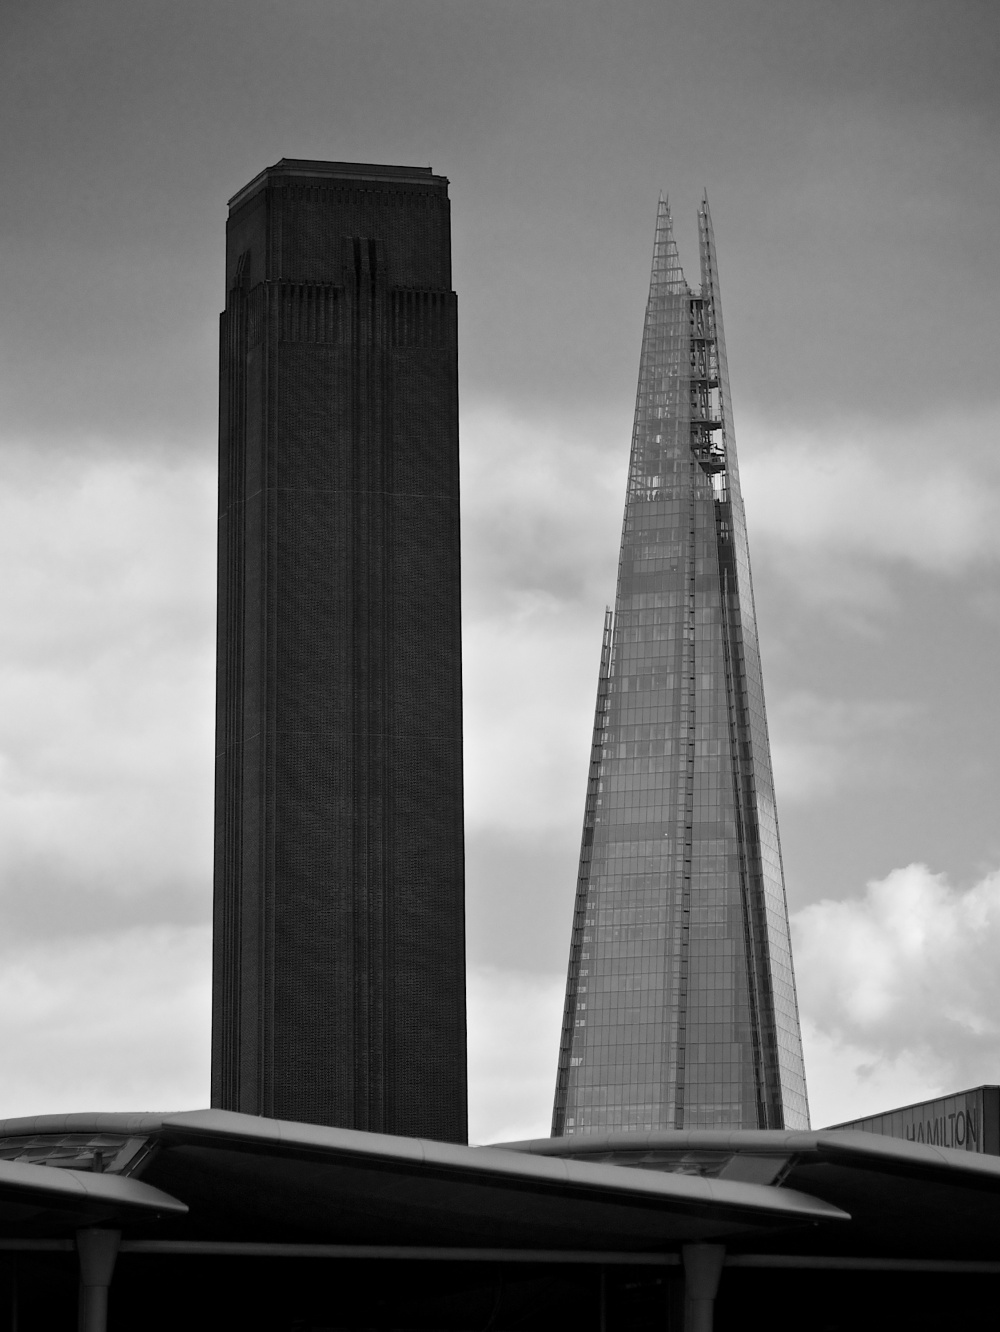 Shard and Tate